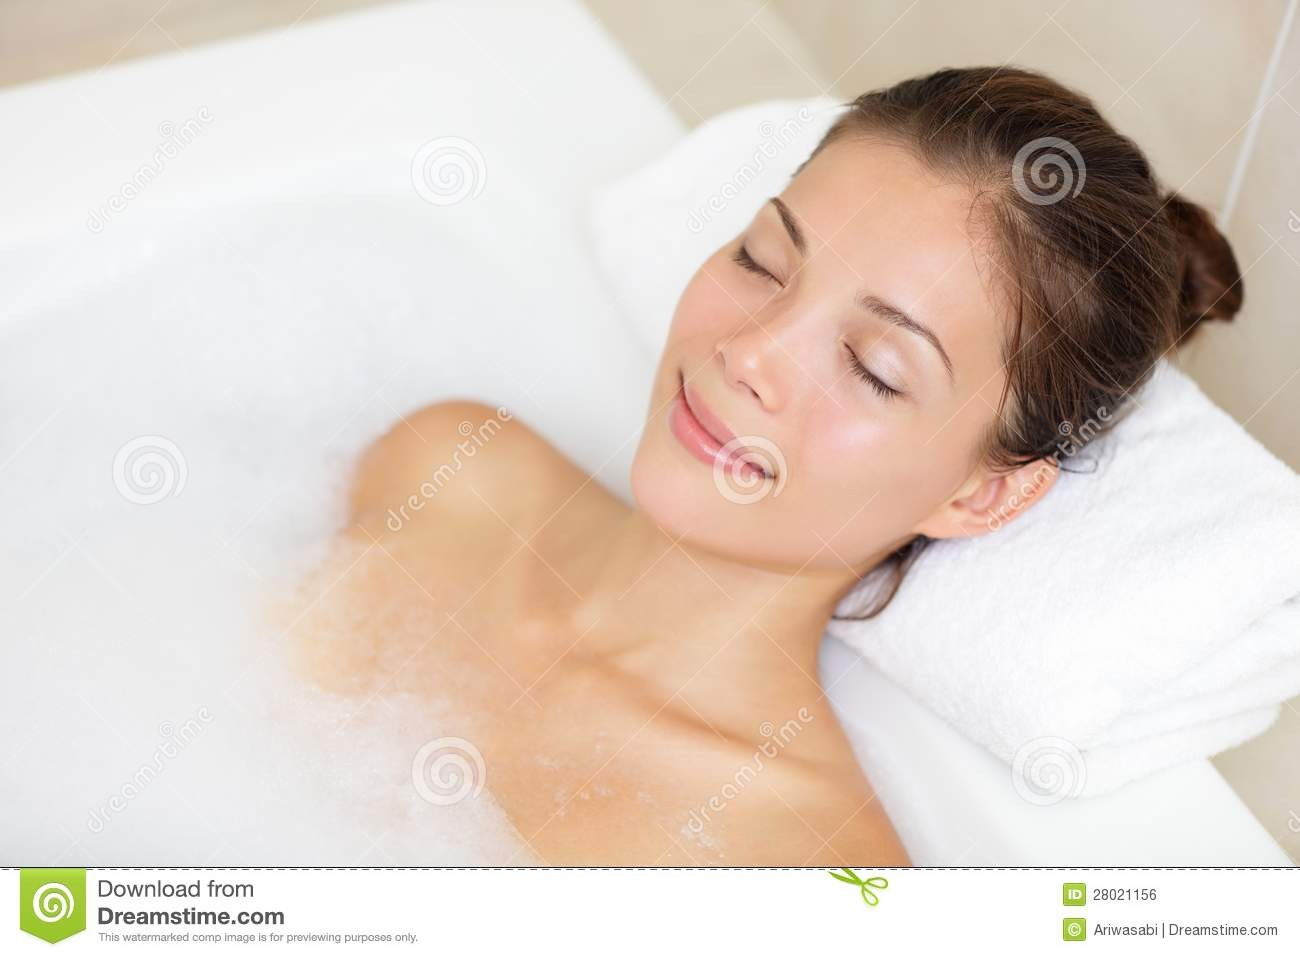 Detox Bath Baking soda also makes a great detox bath. Mix it with equal parts sea salt and add your favorite essential oil (lavender or jasmine are very calming.)